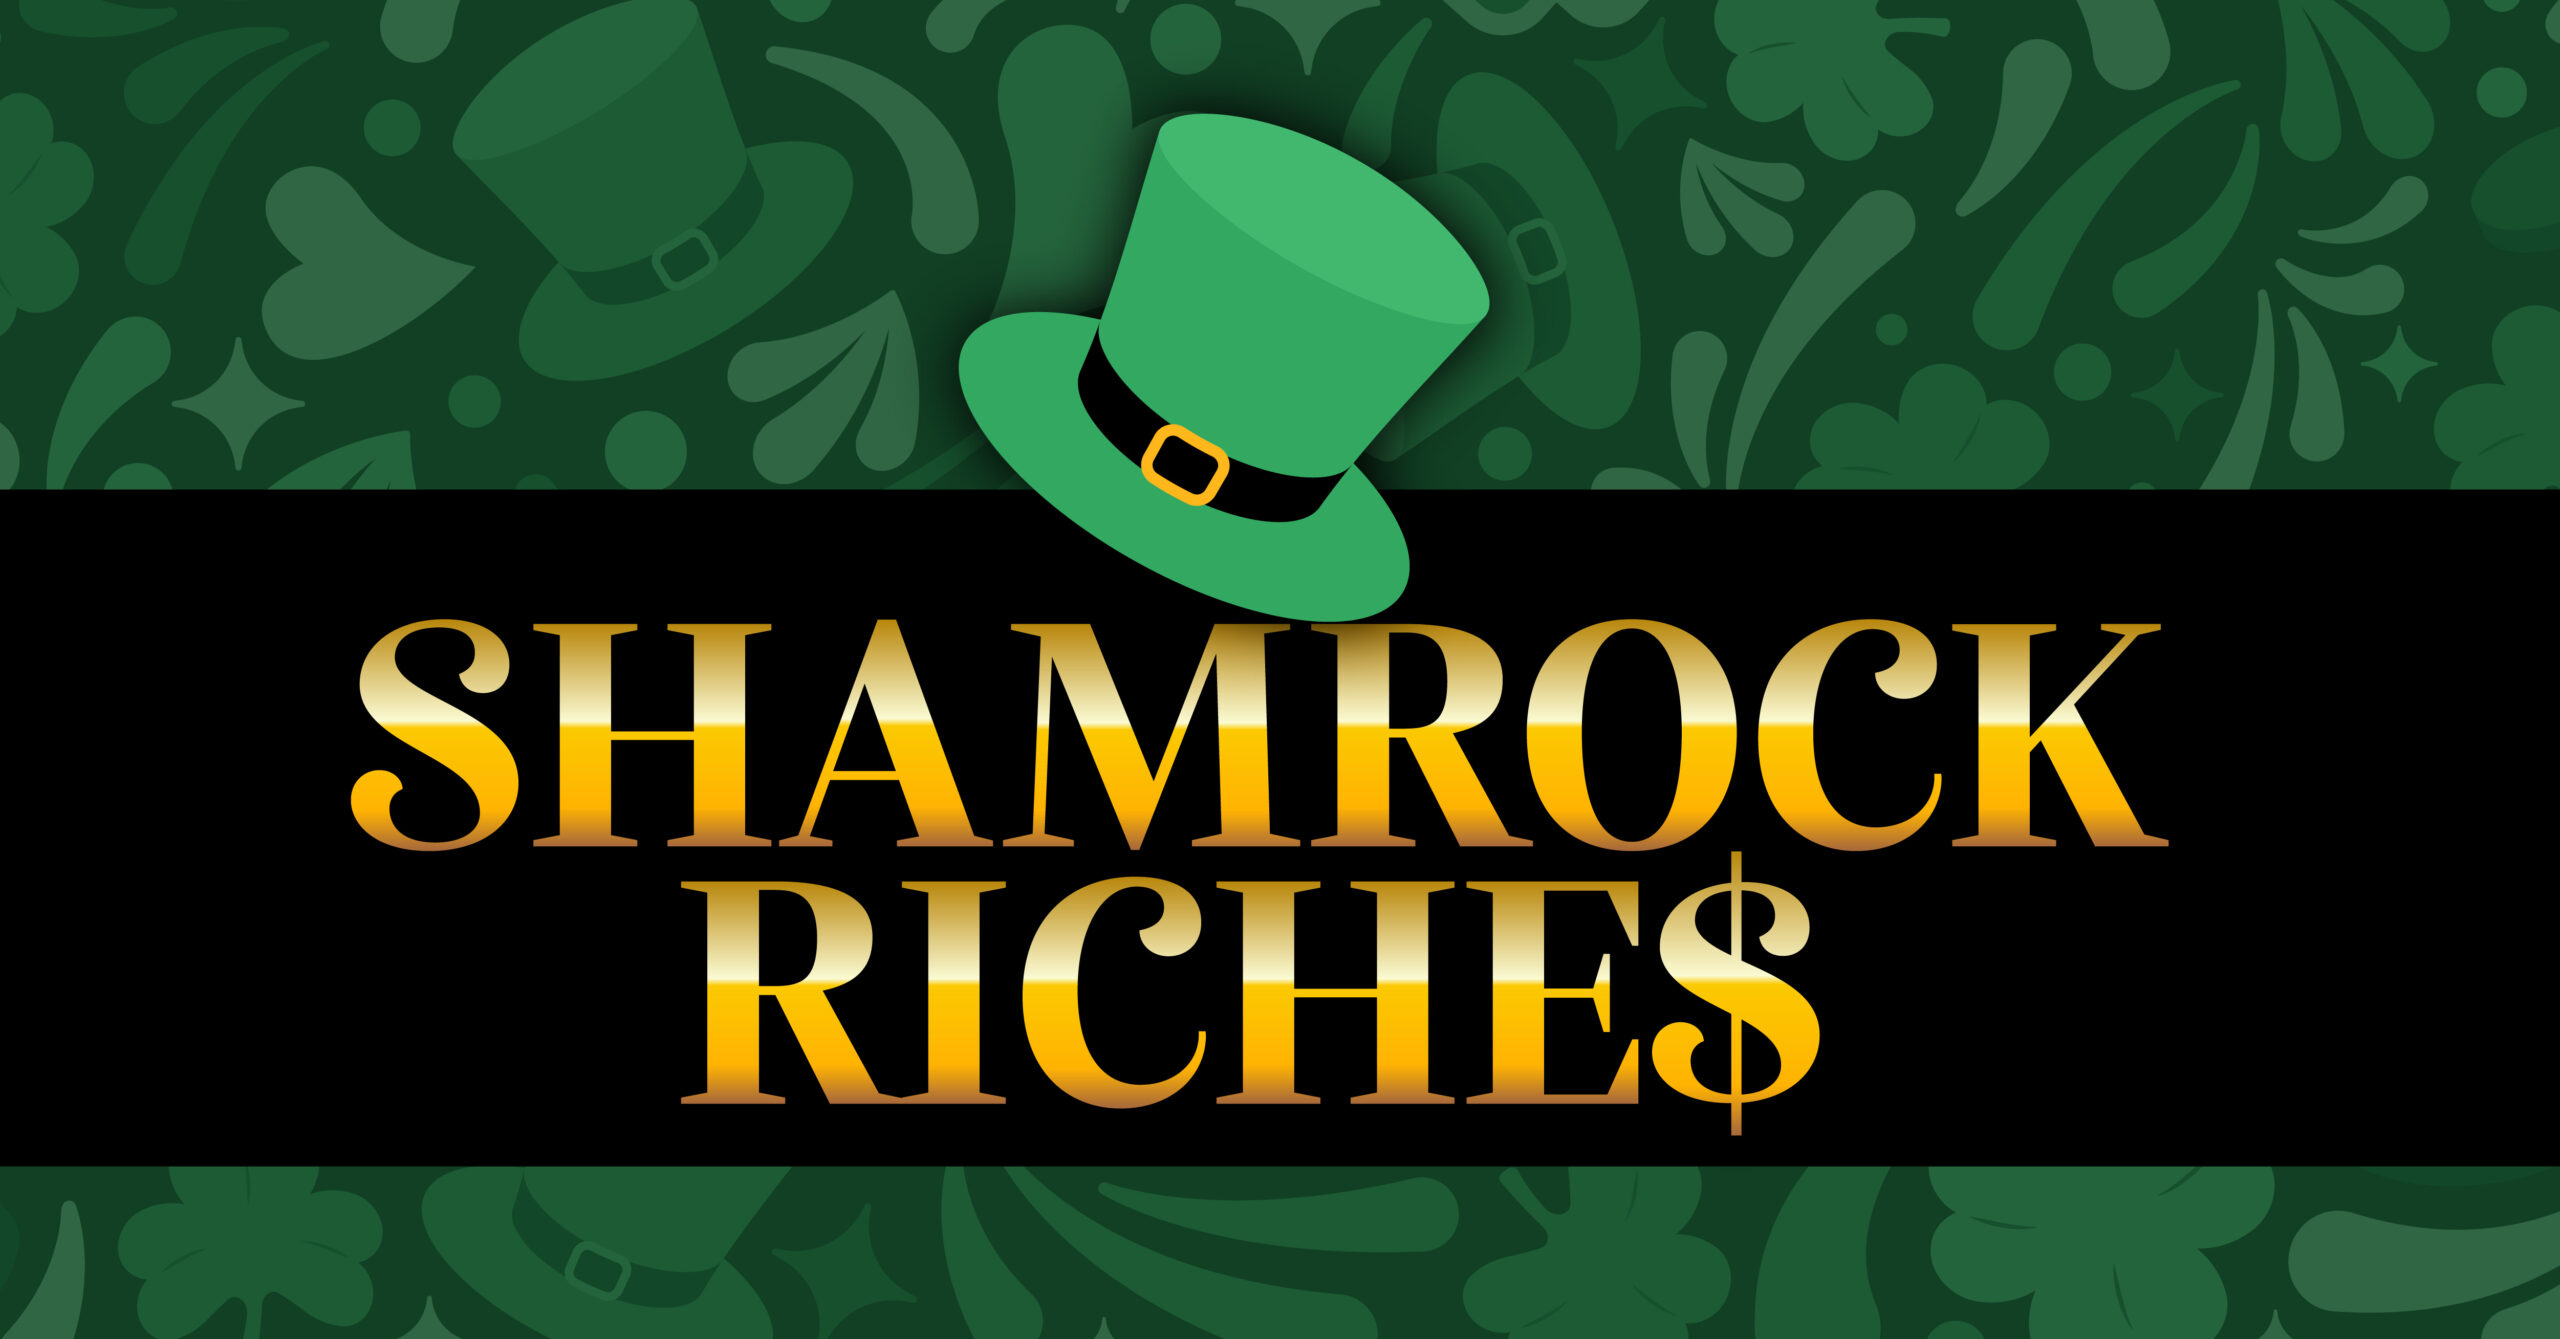 SHAMROCK RICHES GIVEAWAY